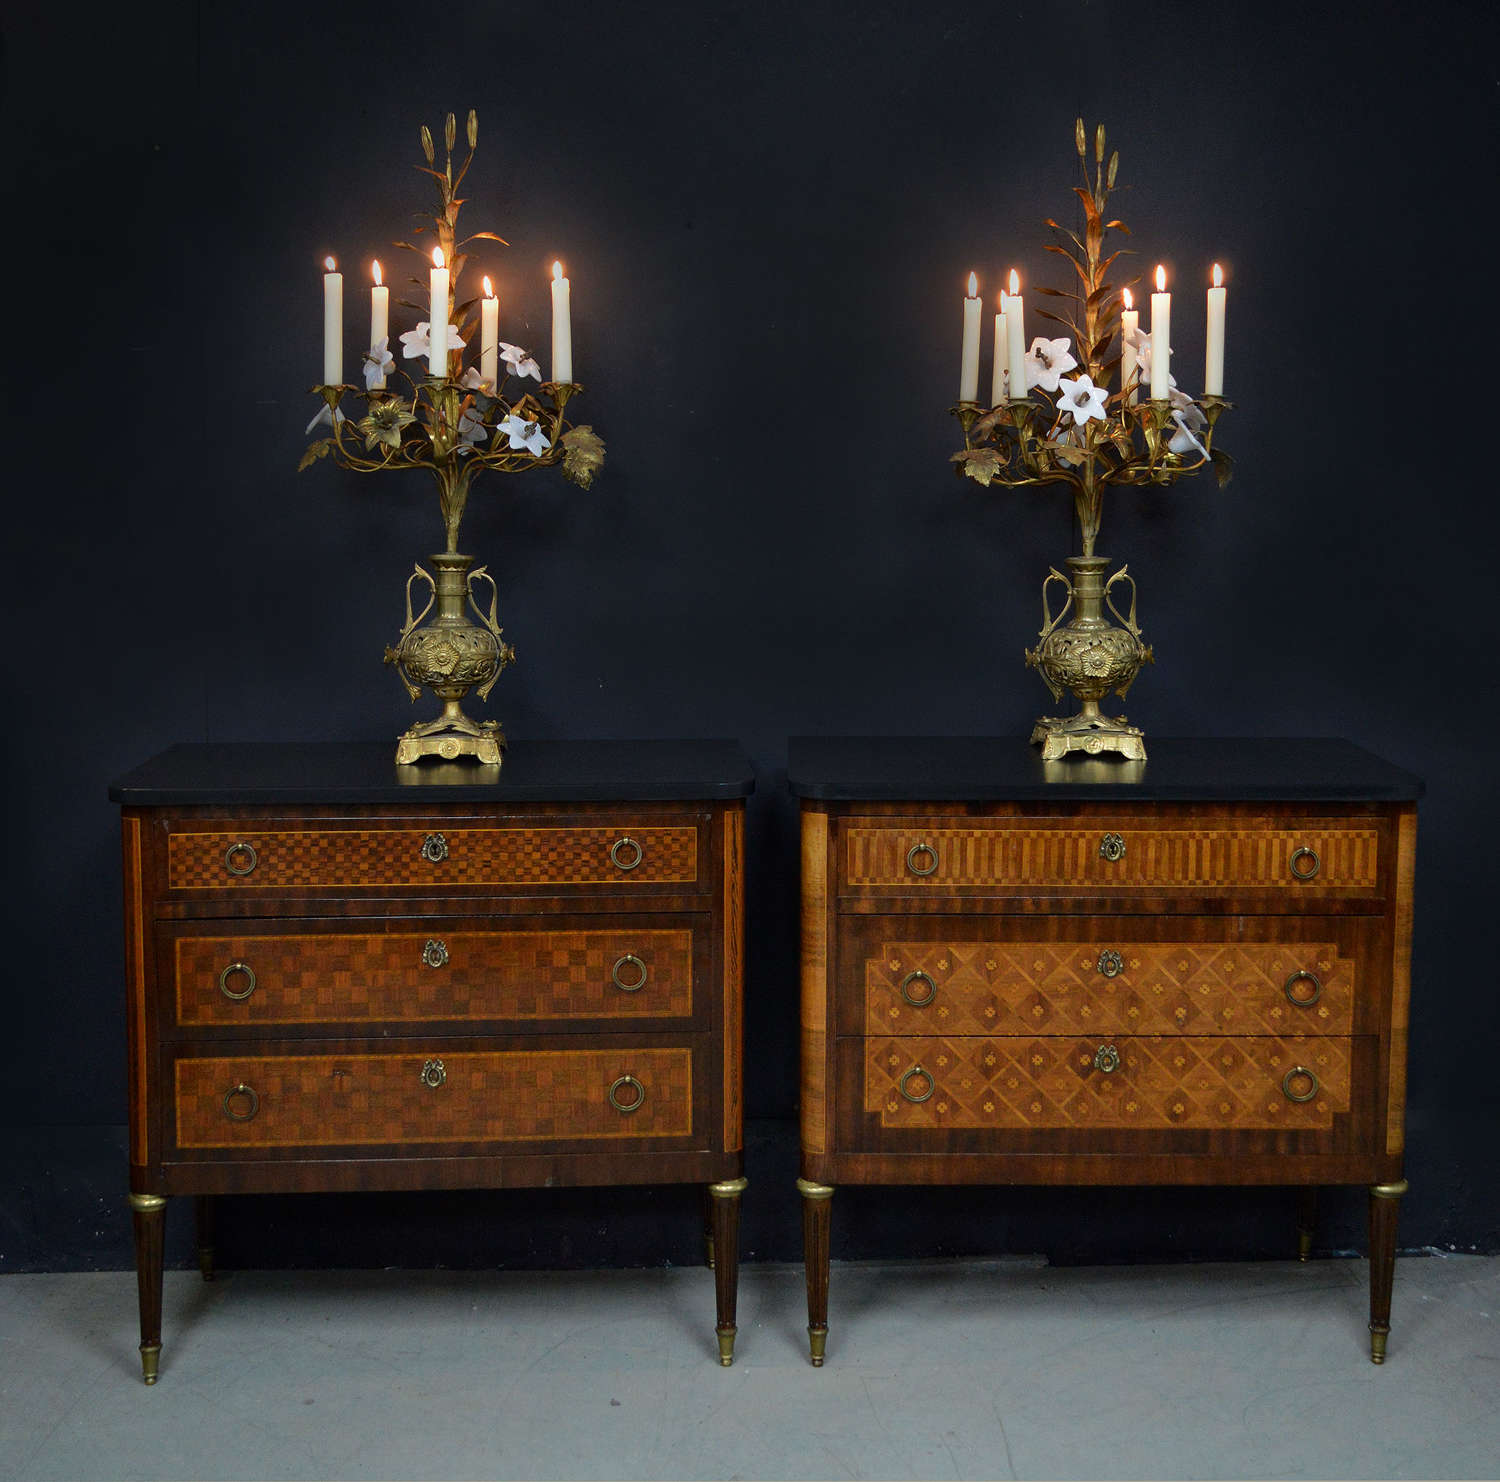 Pair of Louis XVI style inlaid commodes